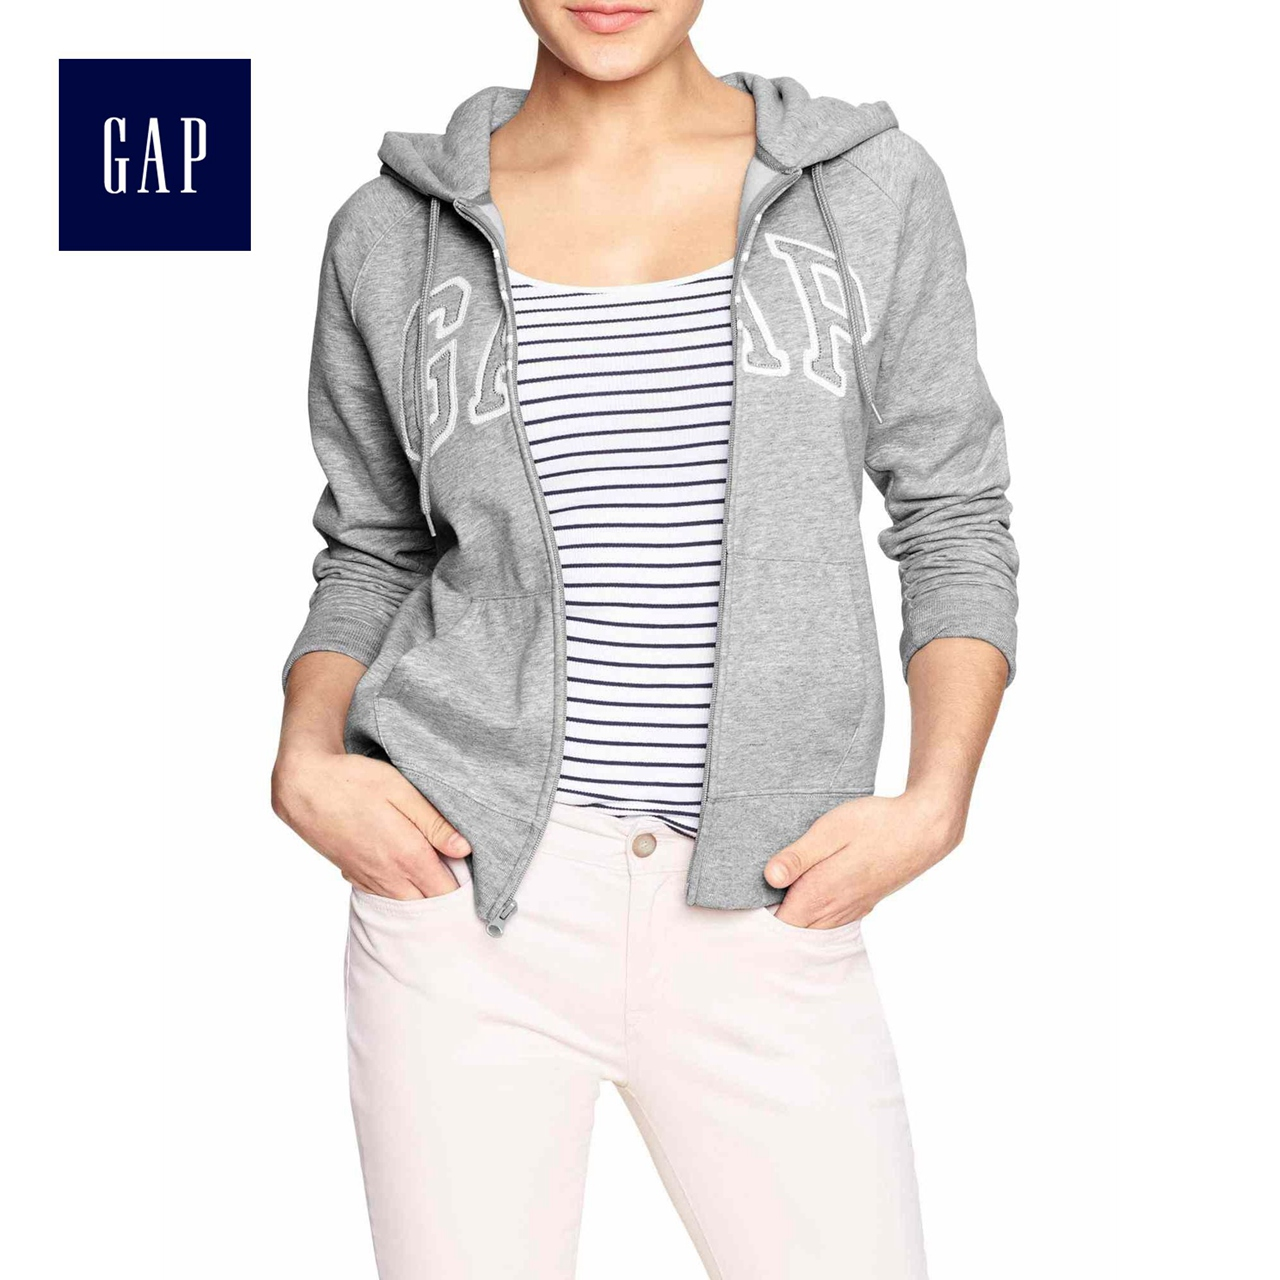 USD 96.10] Gap Women's logo fleece zipper hooded sweater Kangaroo ...